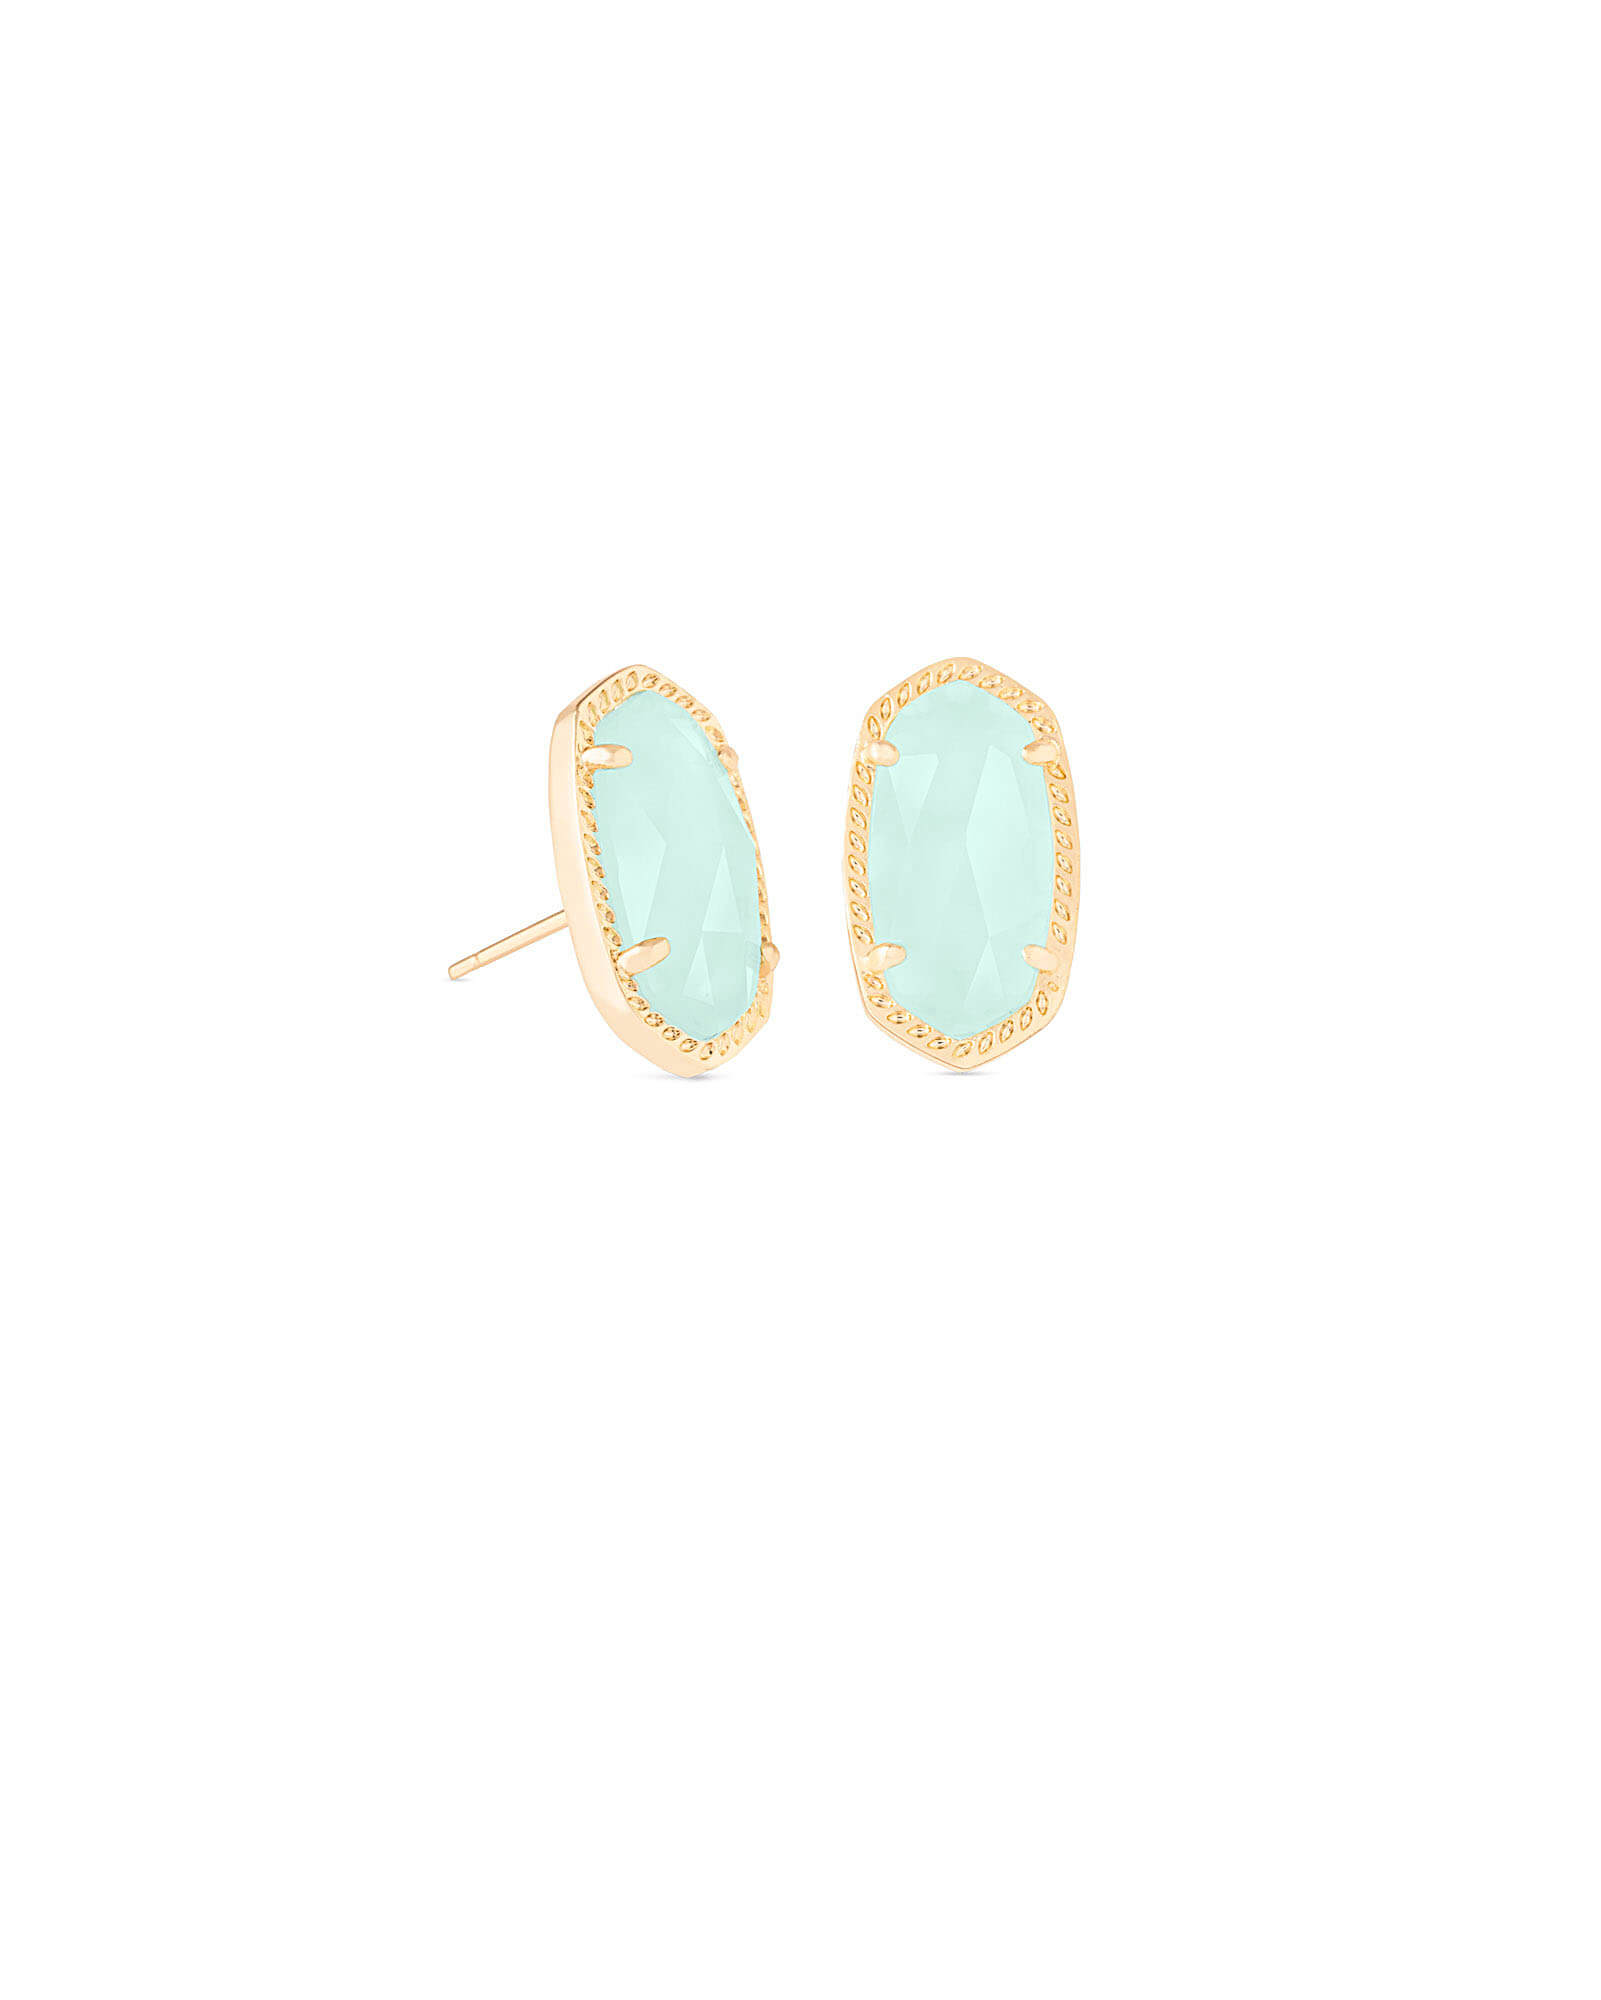 Ellie Stud Earrings in Chalcedony